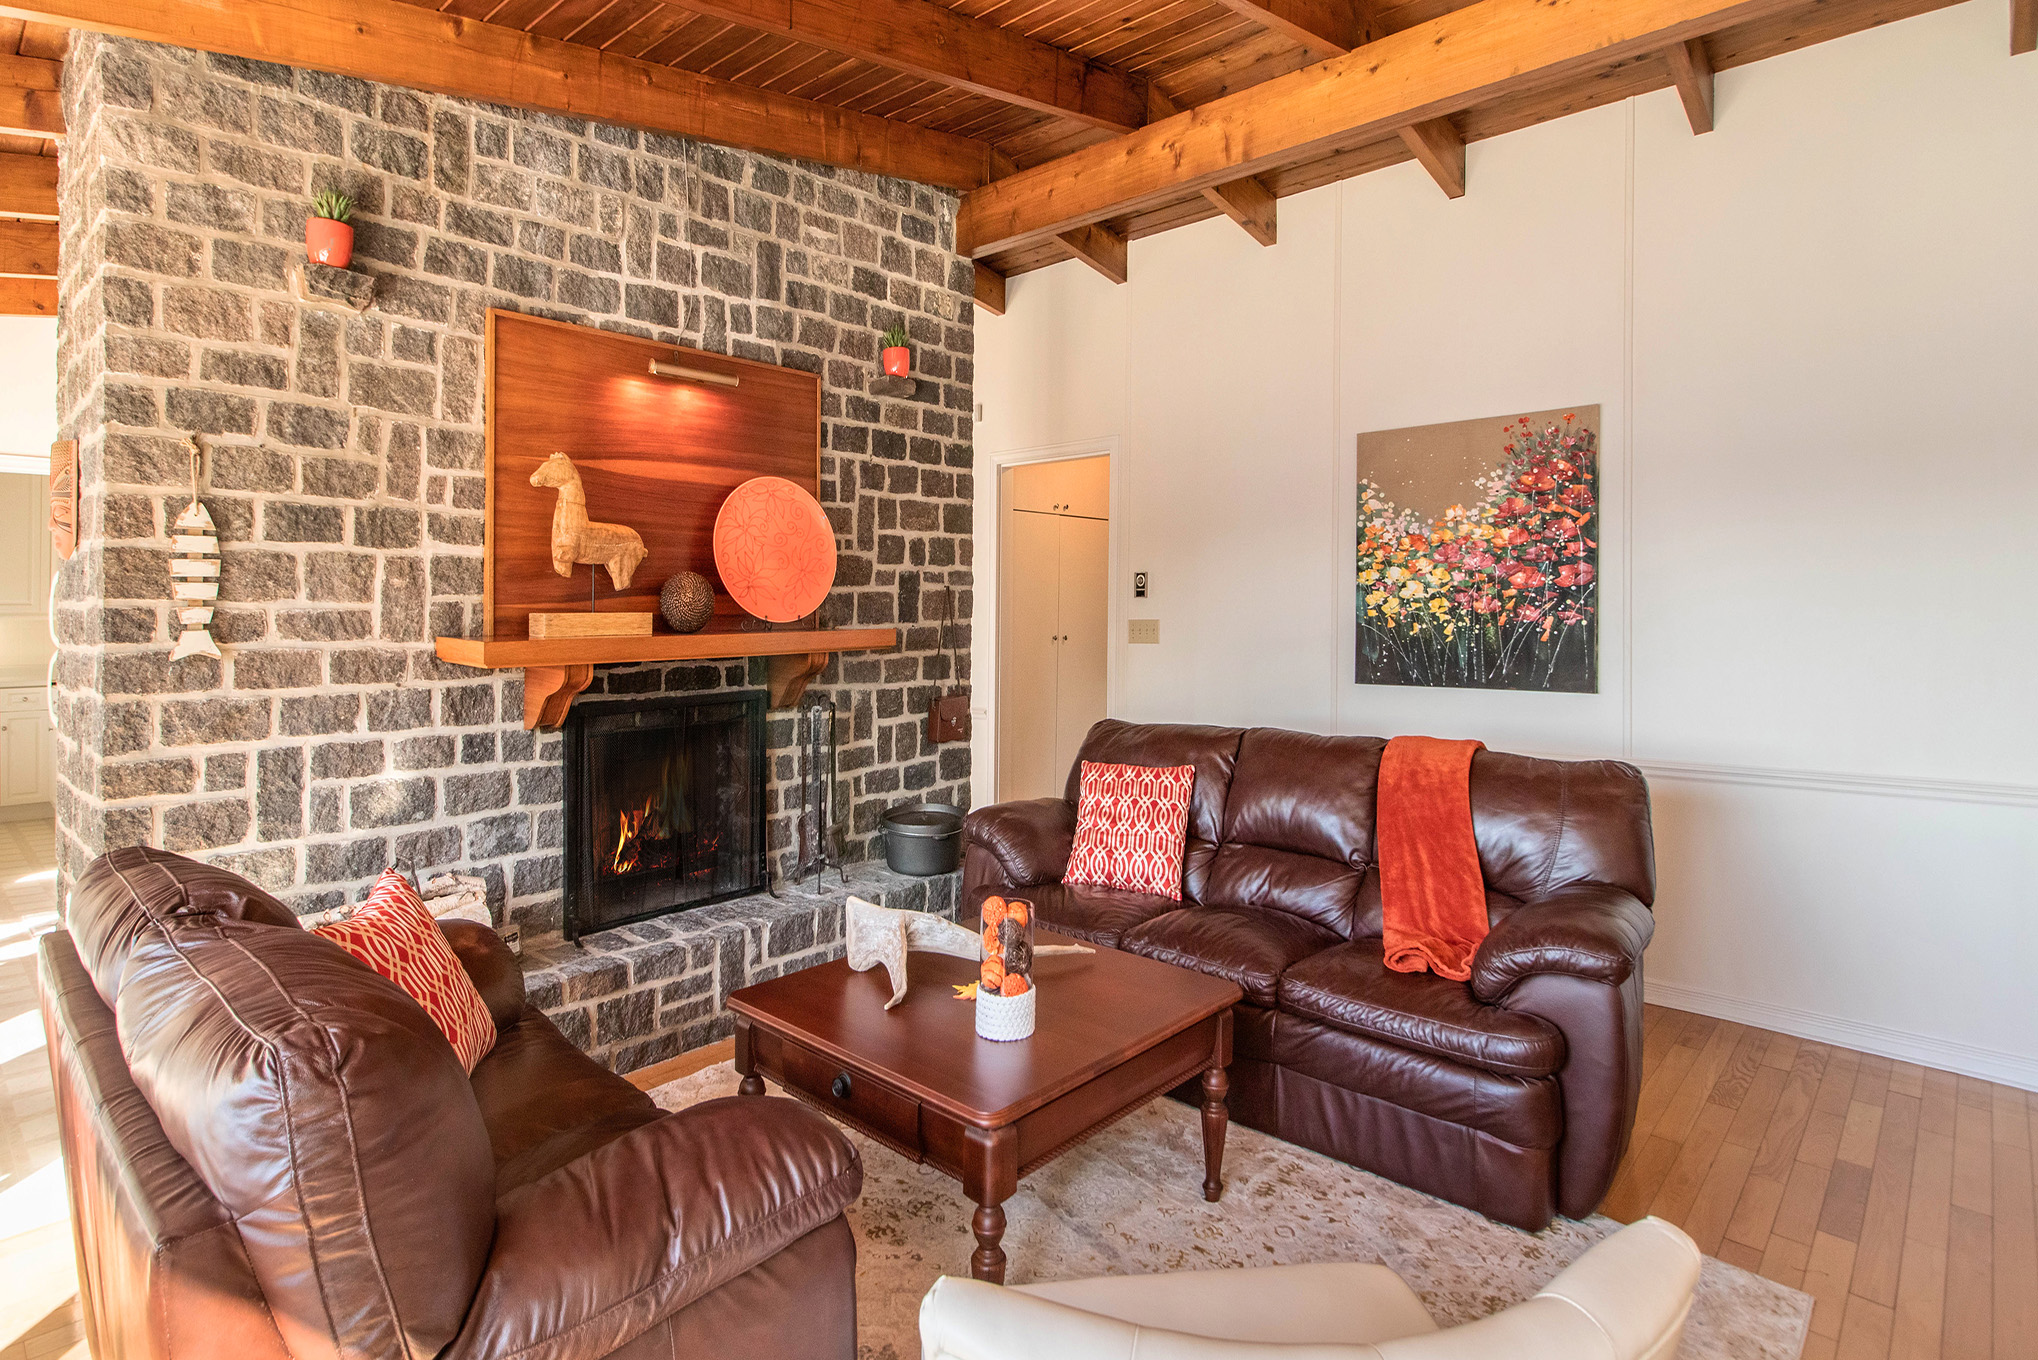 Beautiful main floor living room with stunning views and a custom wood burning fireplace, skip the kitchen, this is the heart of the home right here.